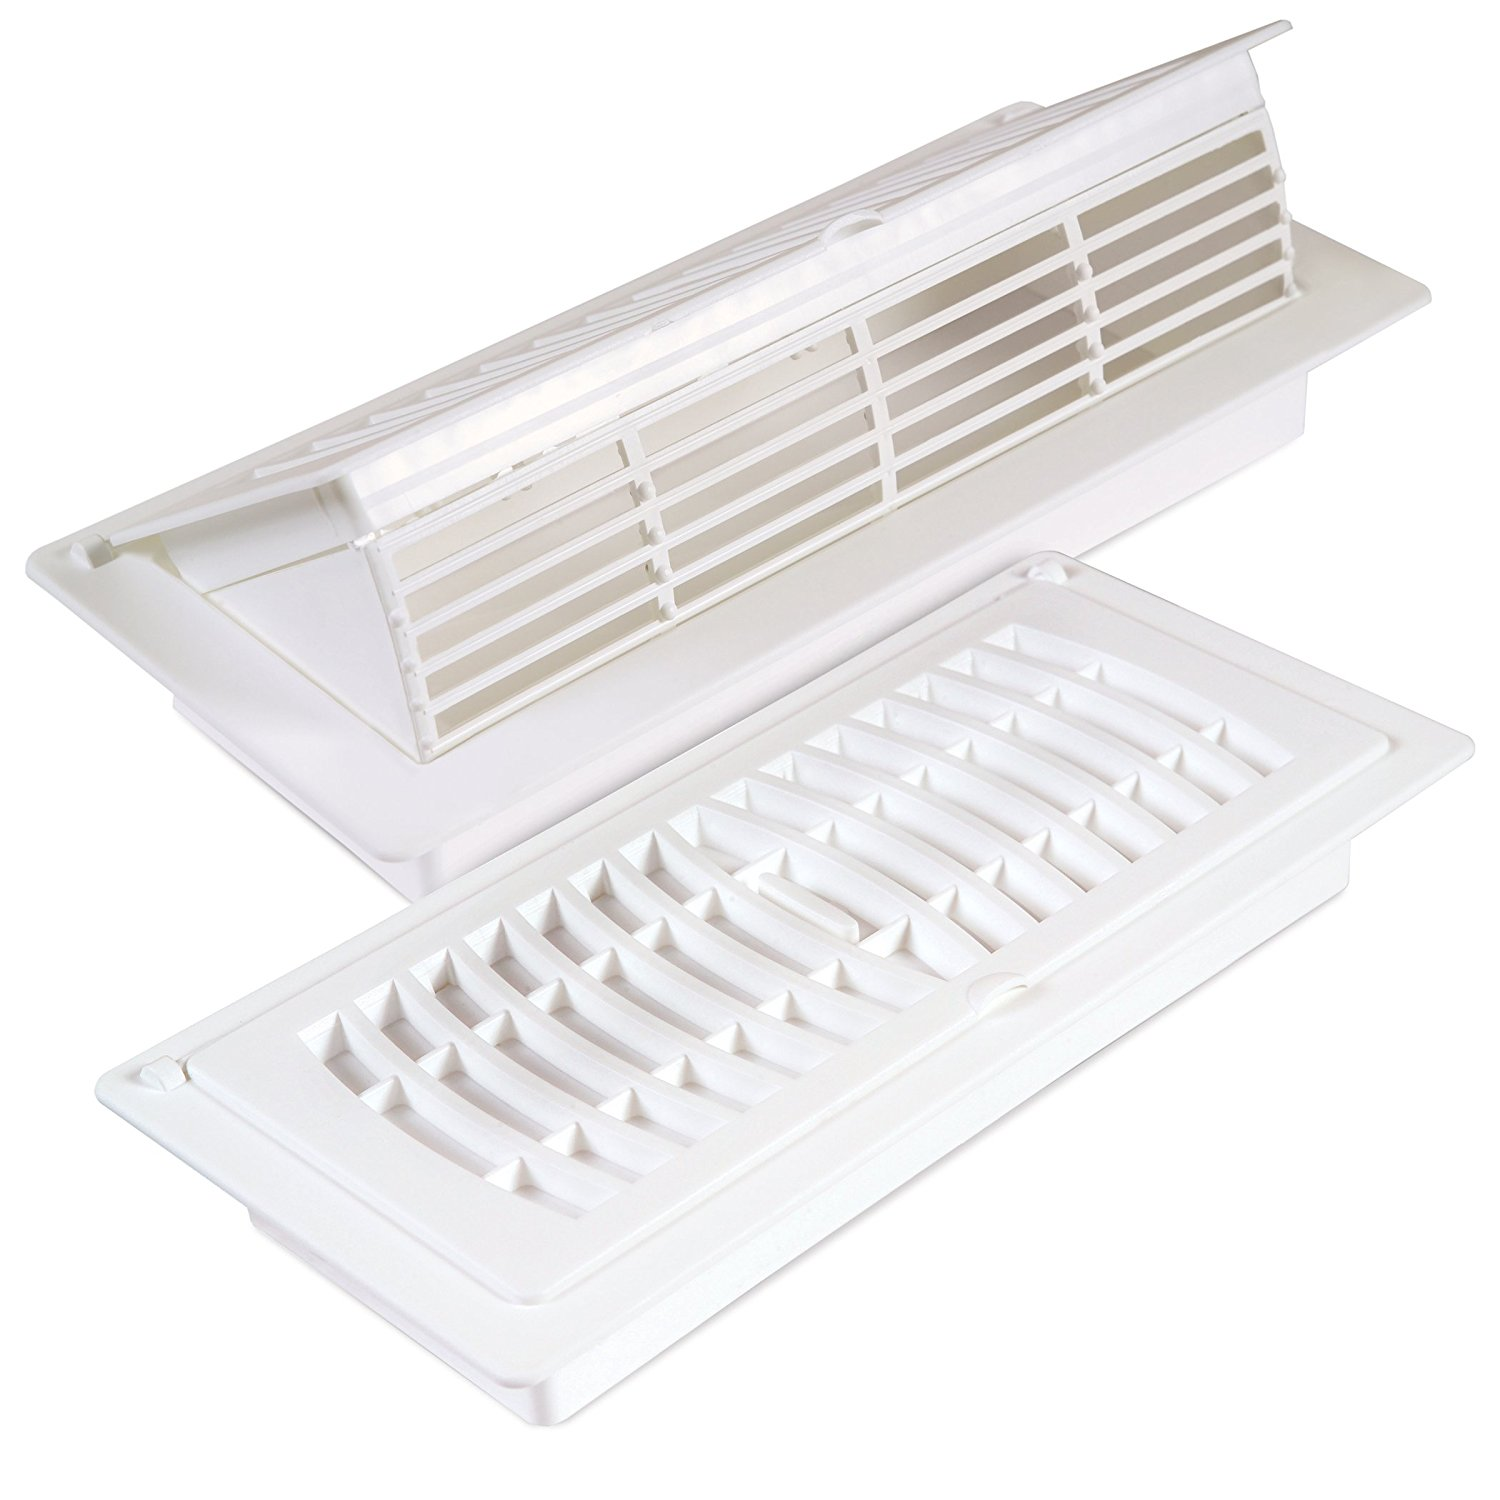 Manufacturing RG3052 4-Inch by 10-Inch Pop-Up Register, White, 4Inch RG3052 White Register by PopUp Manufacturing 10Inch By Imperial